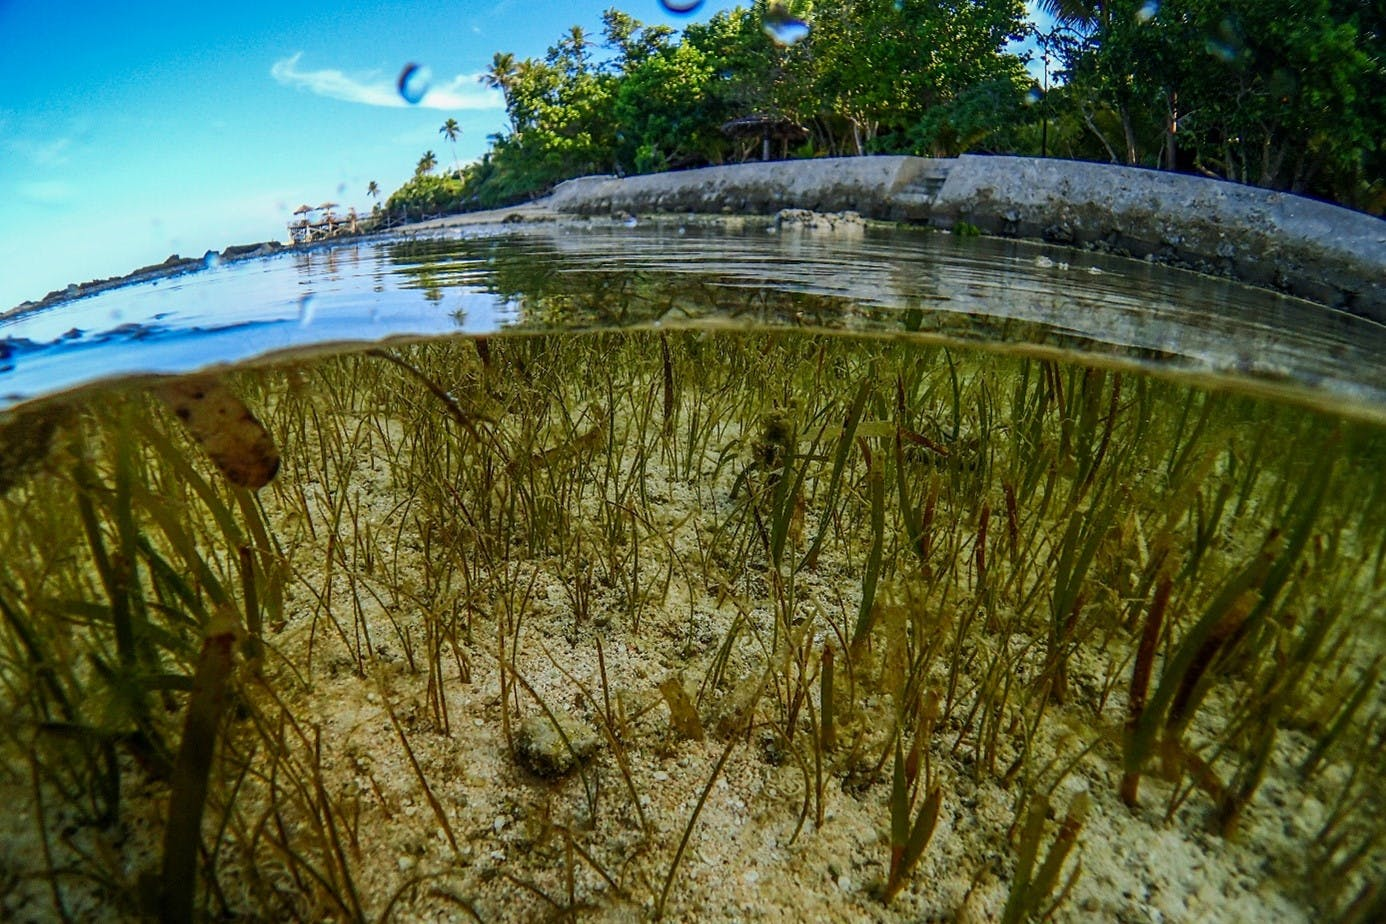 . A beautiful above and below the water image of seagrass. Seagrass has recently been recognised for its significant potential in mitigating climate change